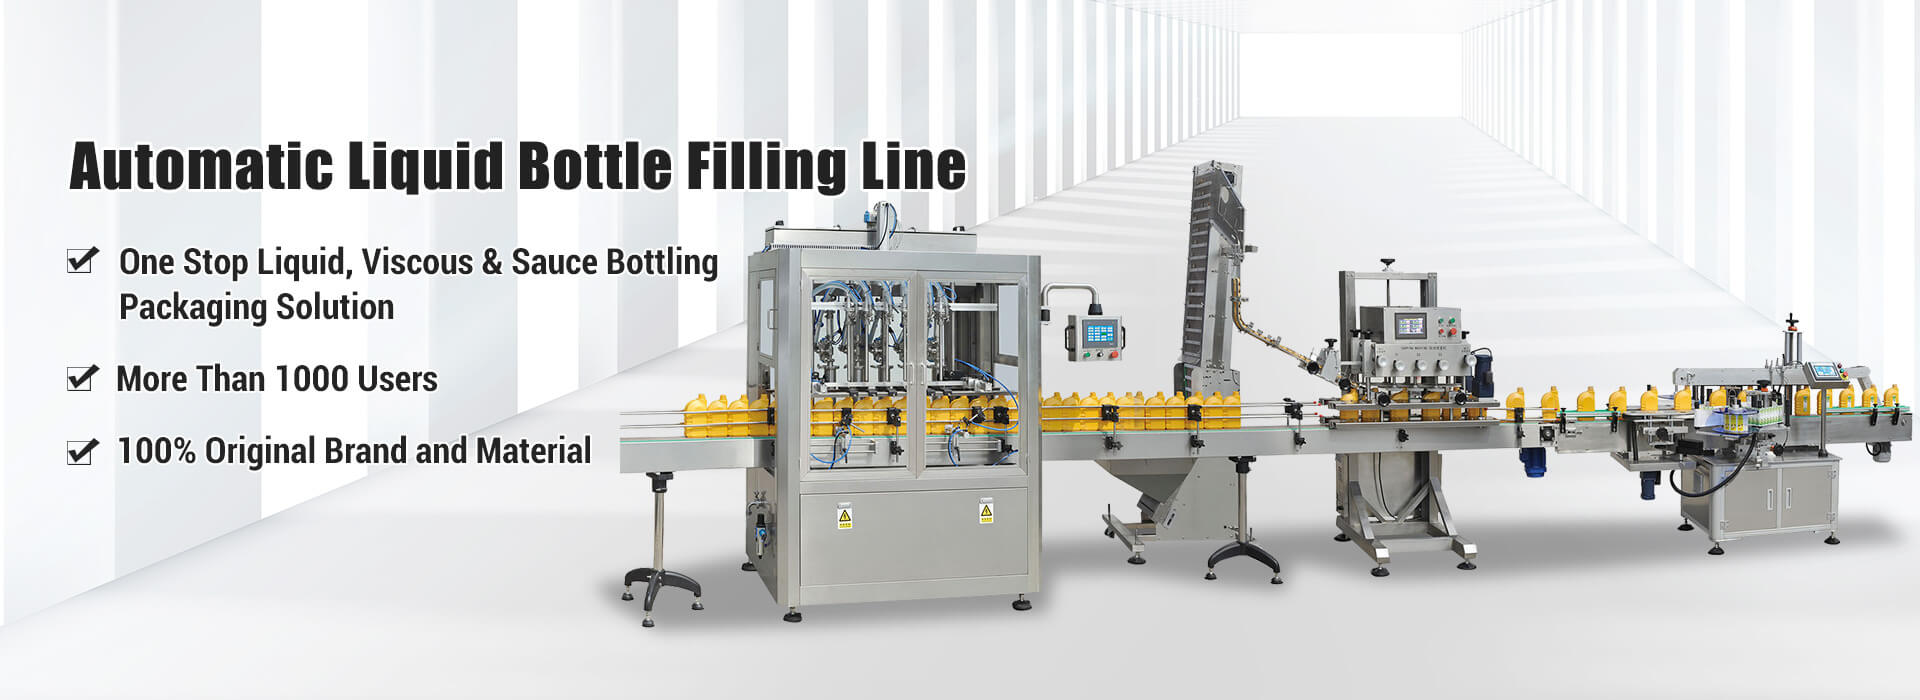 Bottle Filling Line